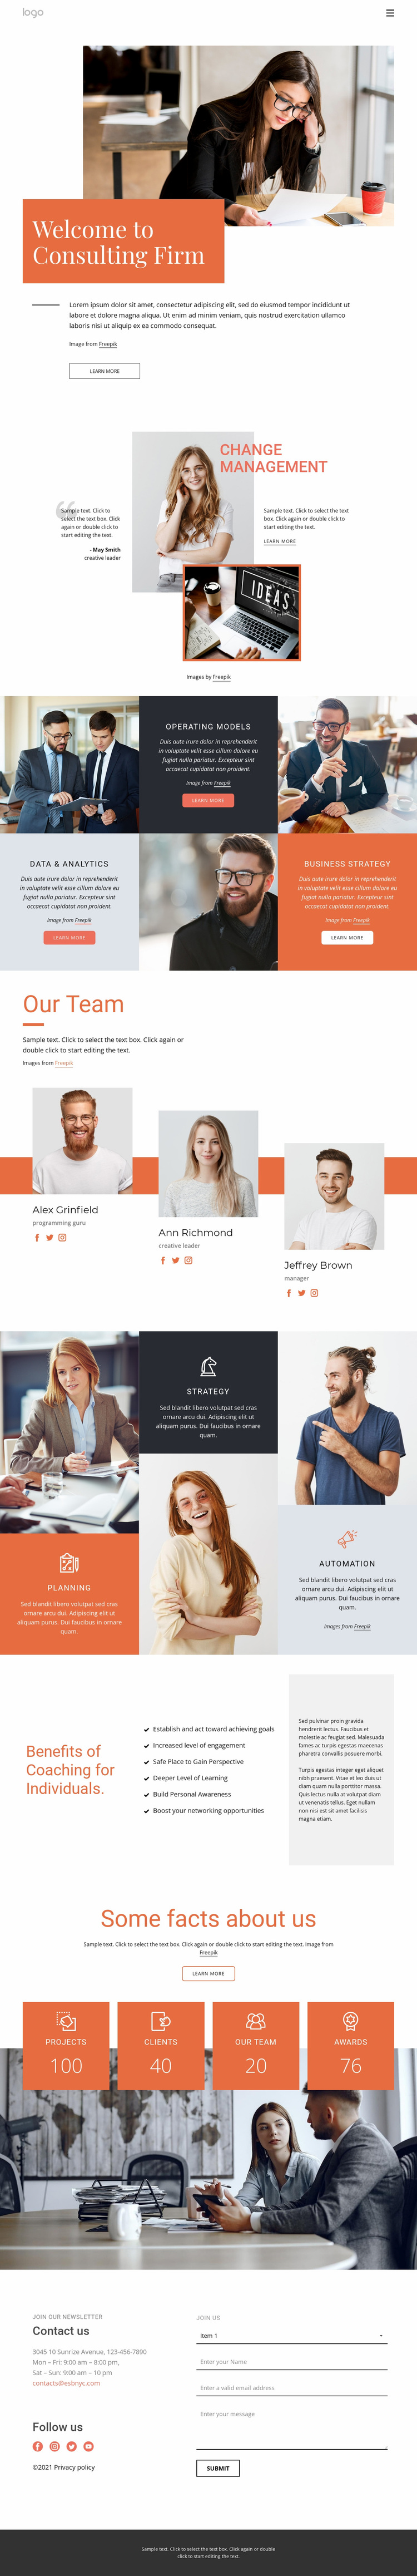 Consulting firm Website Design